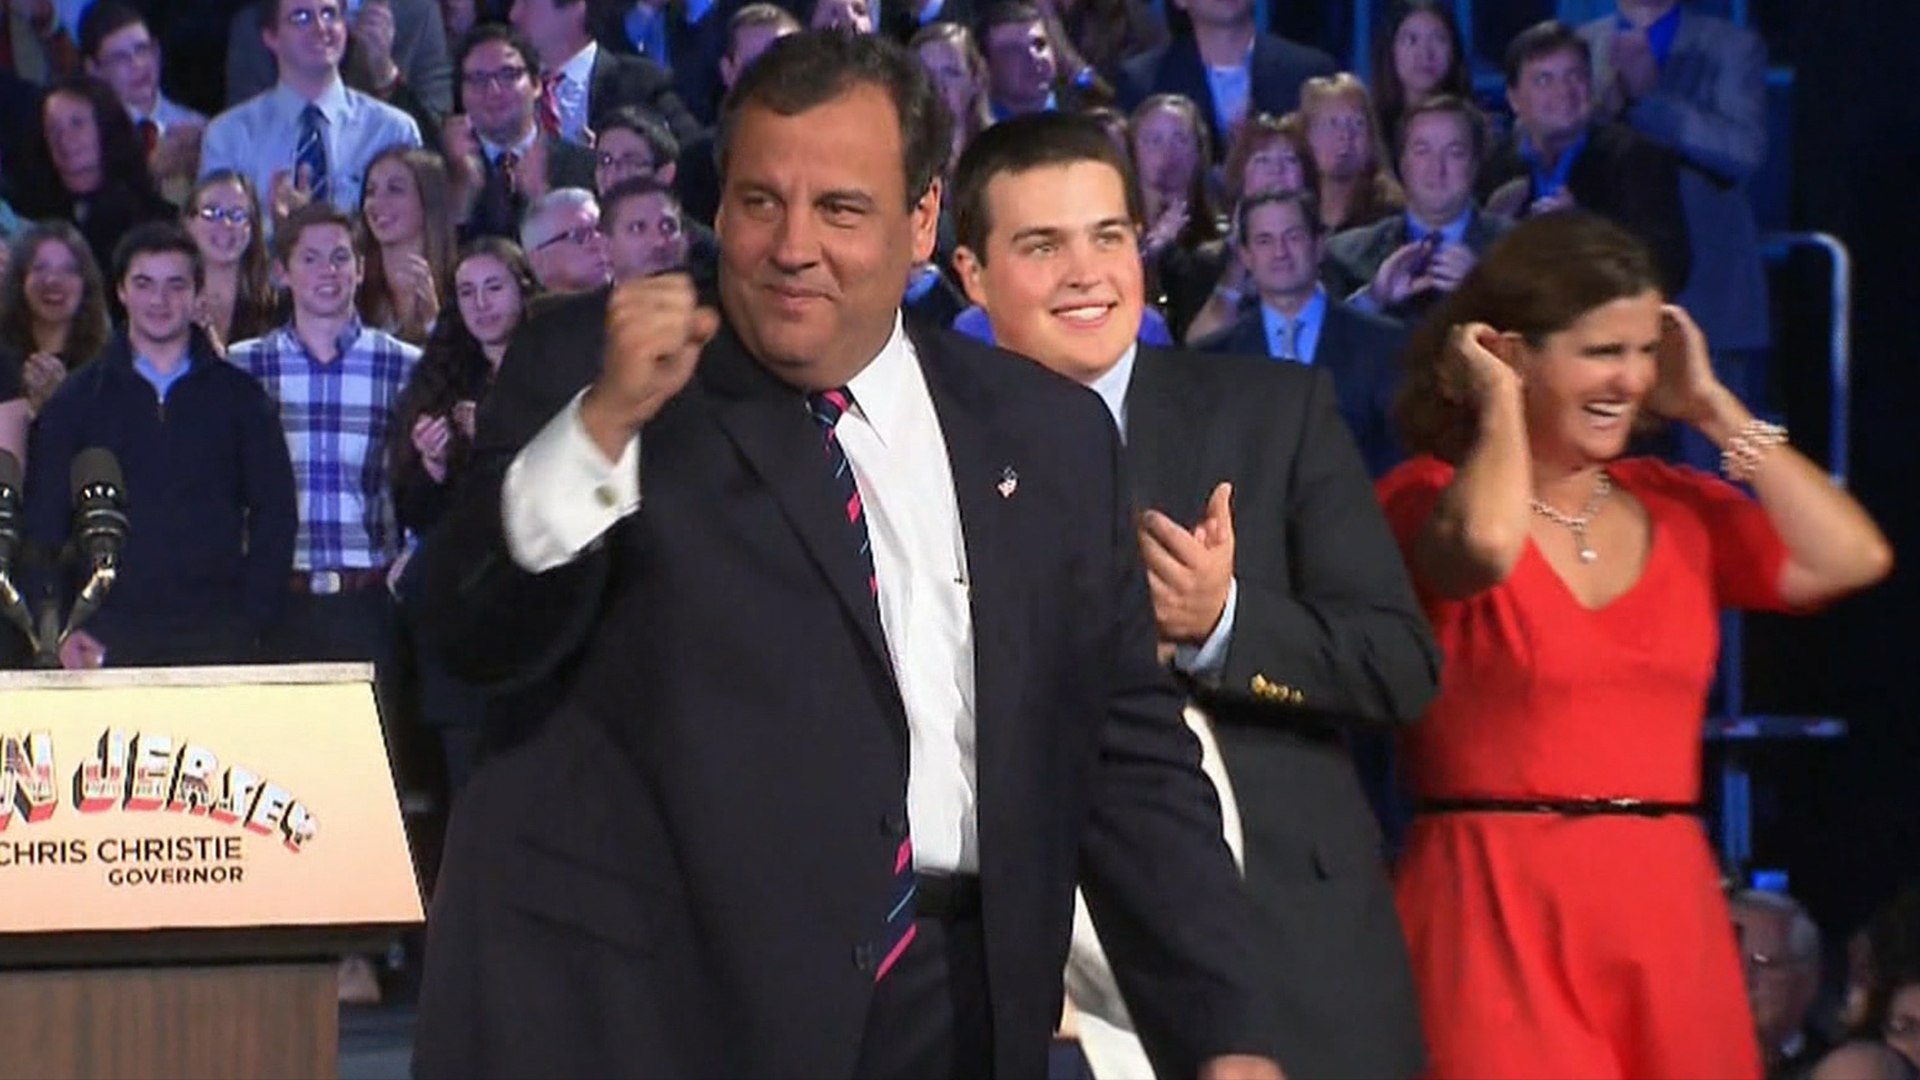 All In All-Star Show: Christie's big year